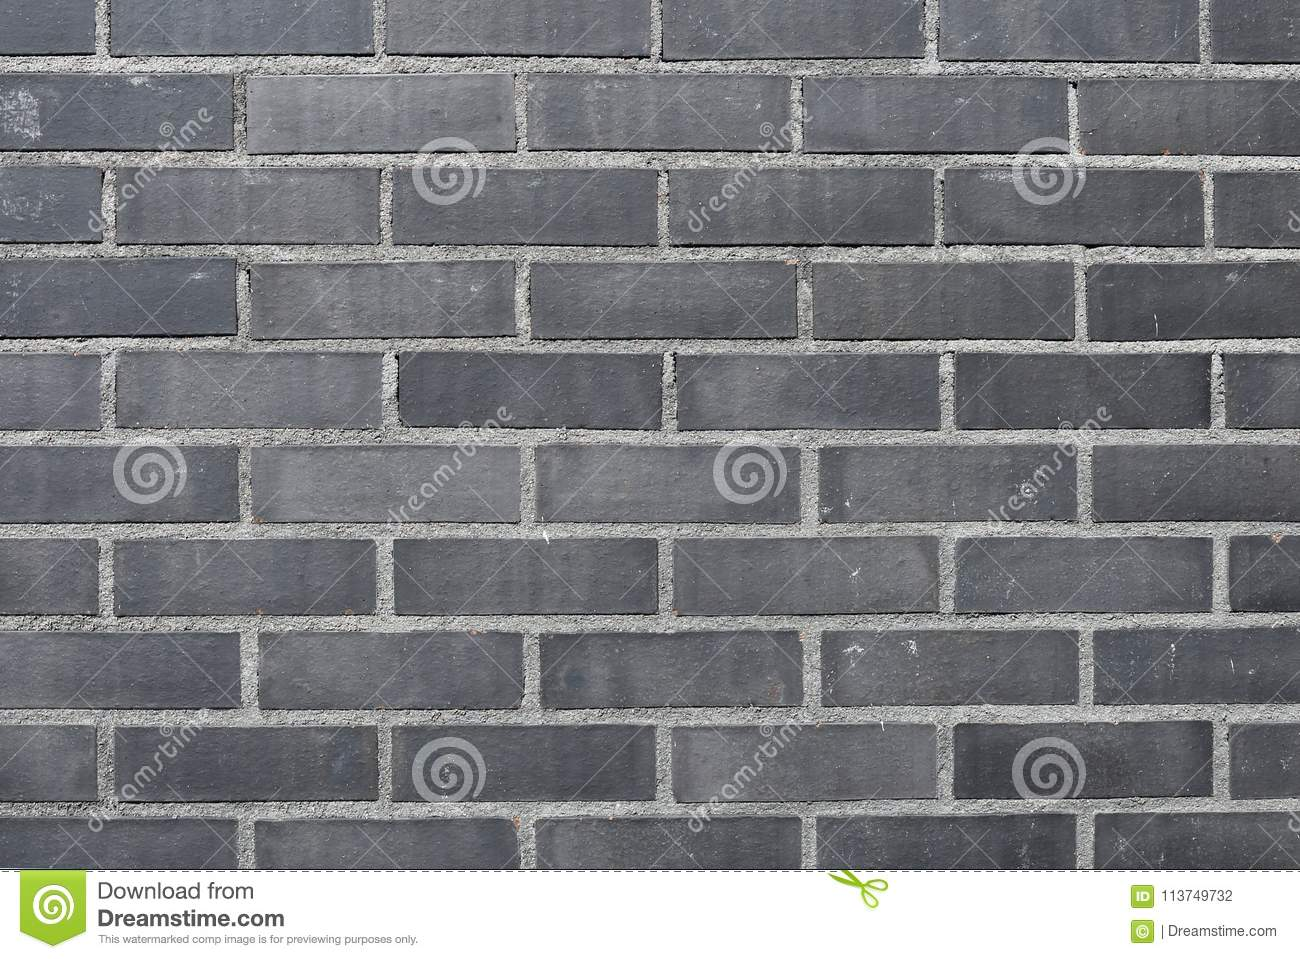 Download Beautifully Textured Dark Grey Brick Wall Stock Photo